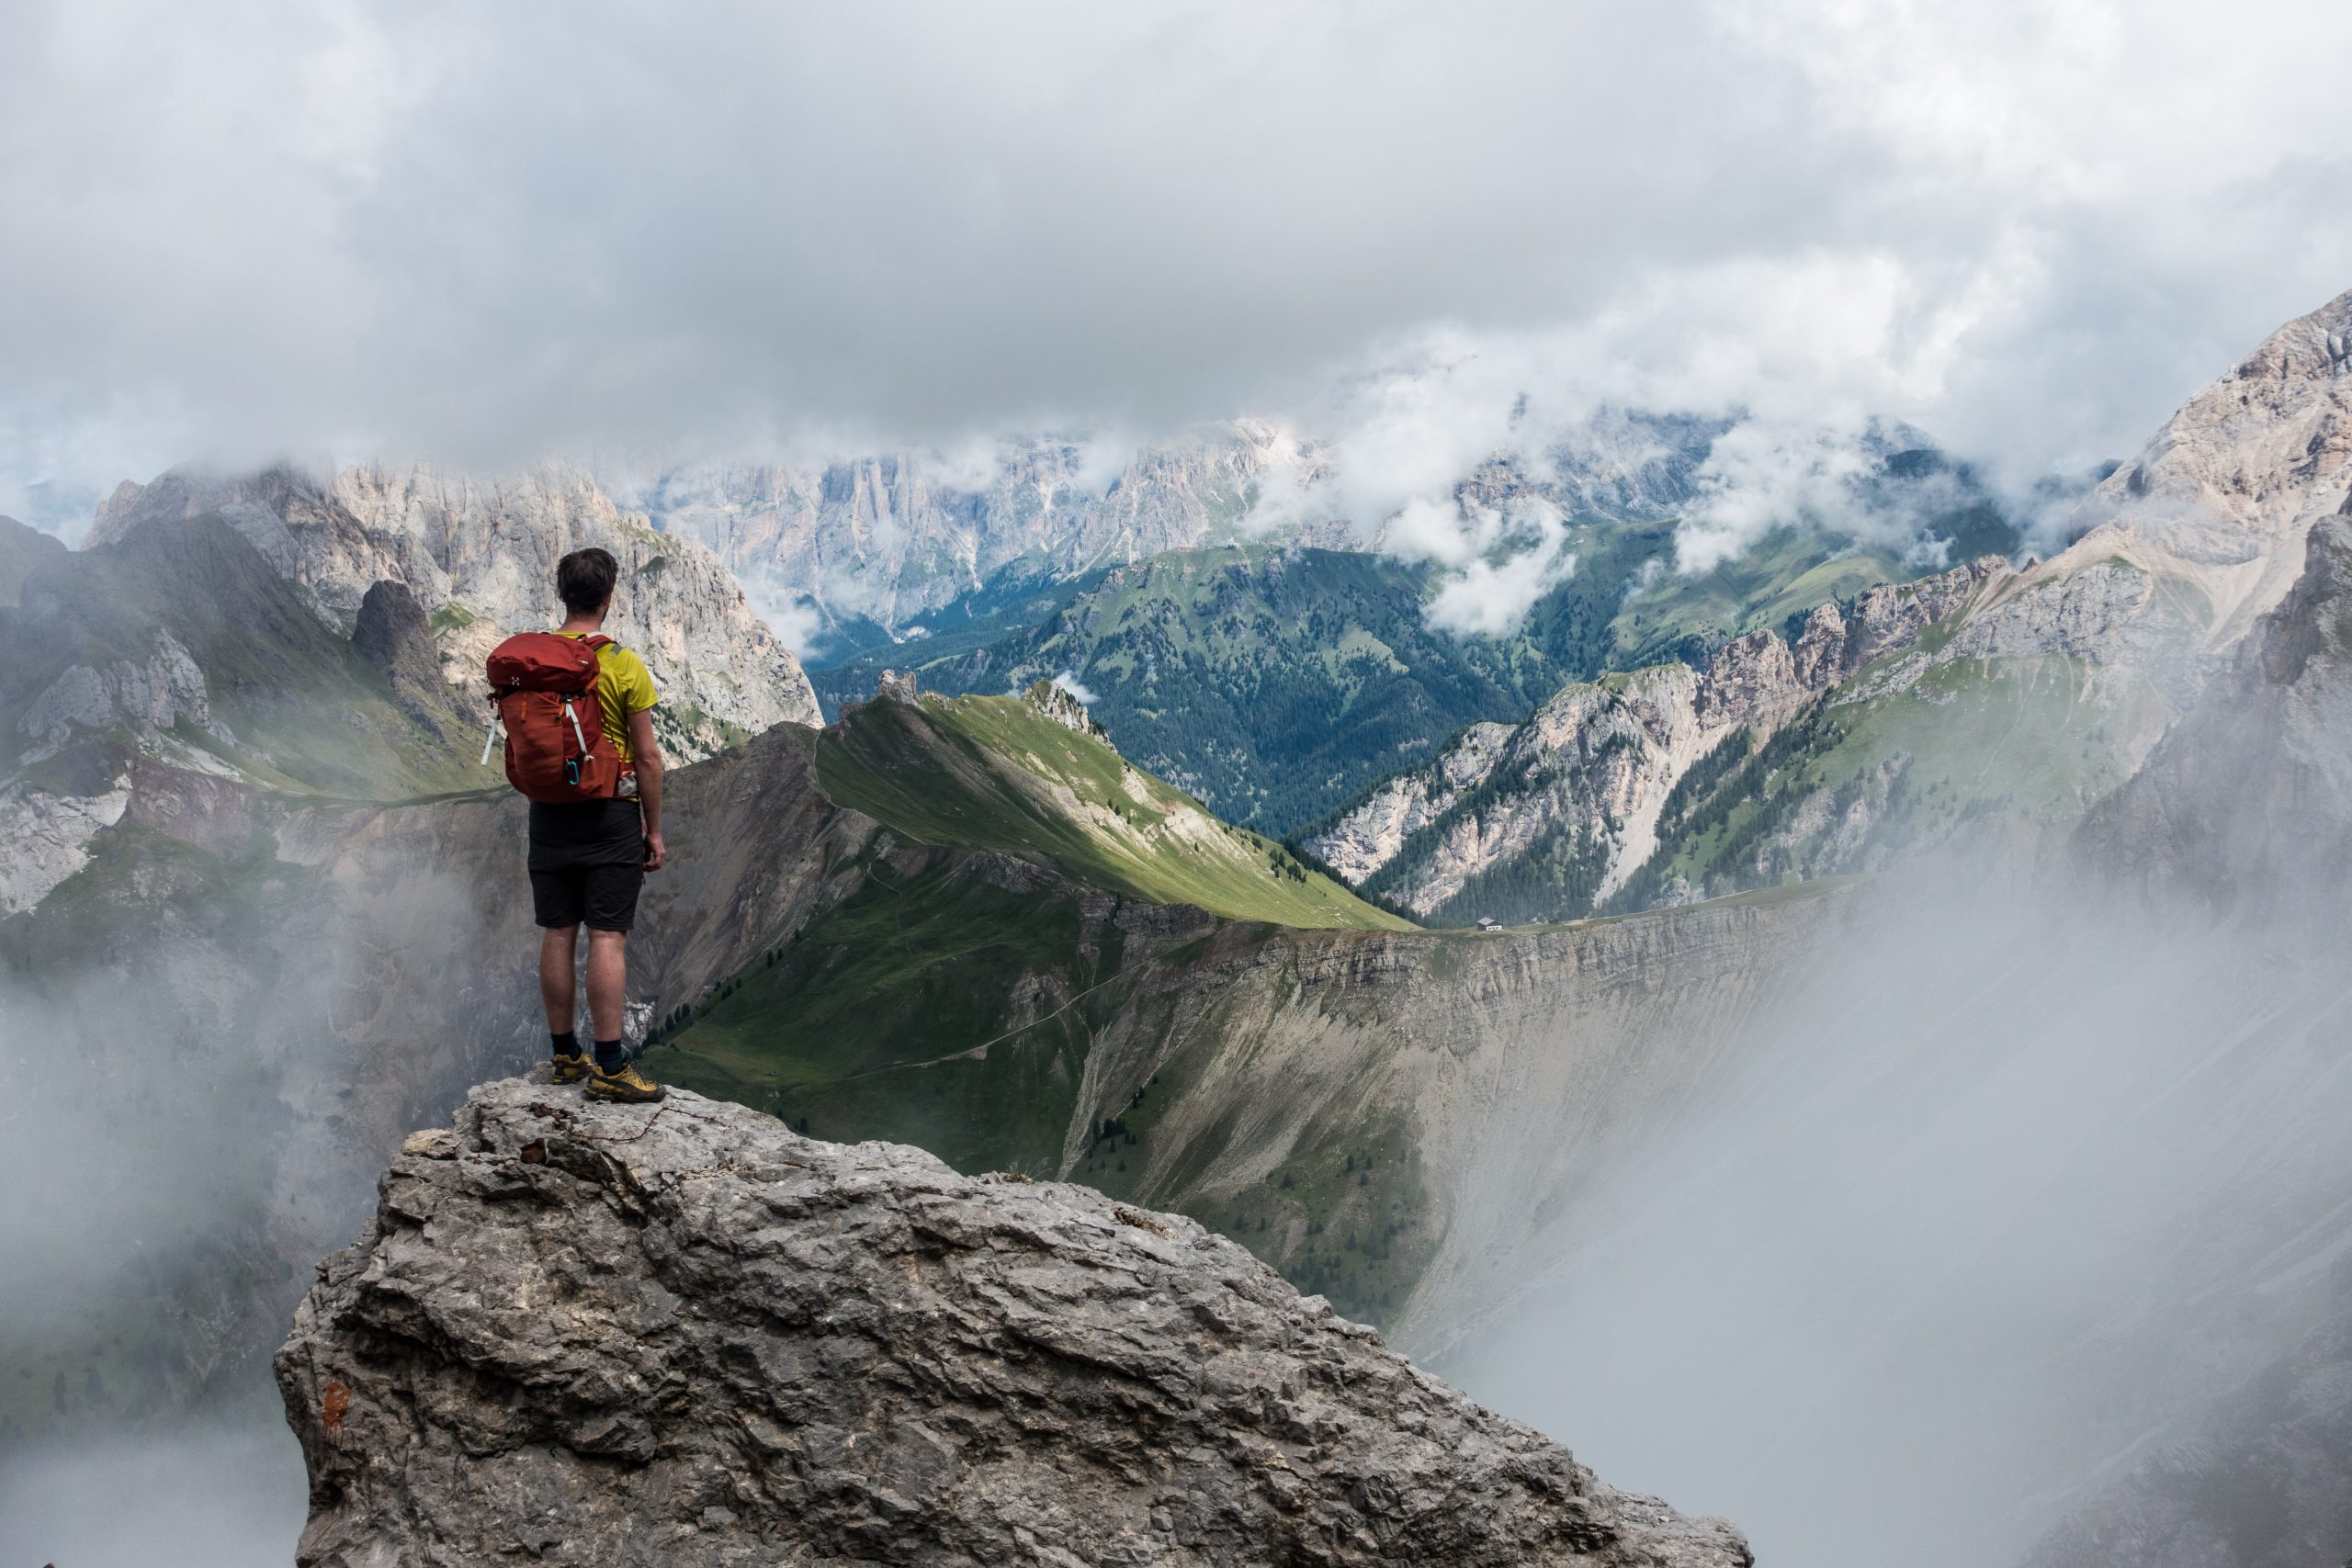 Man with backpack stands on the edge of a cliff looking out over a gorgeous and vast mountainscape.